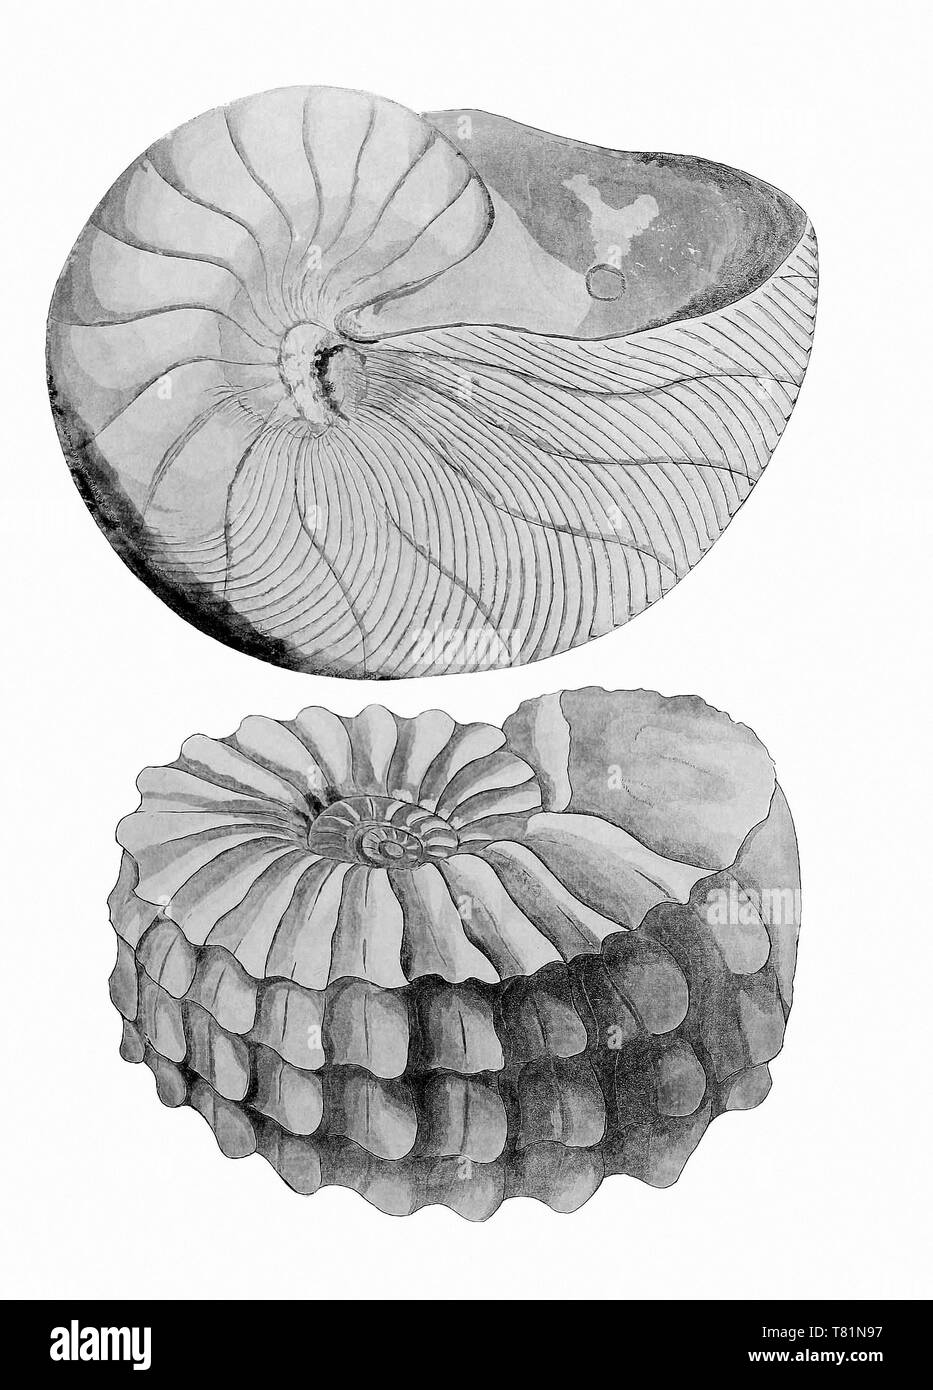 Nautilus and Ammonite - Stock Image